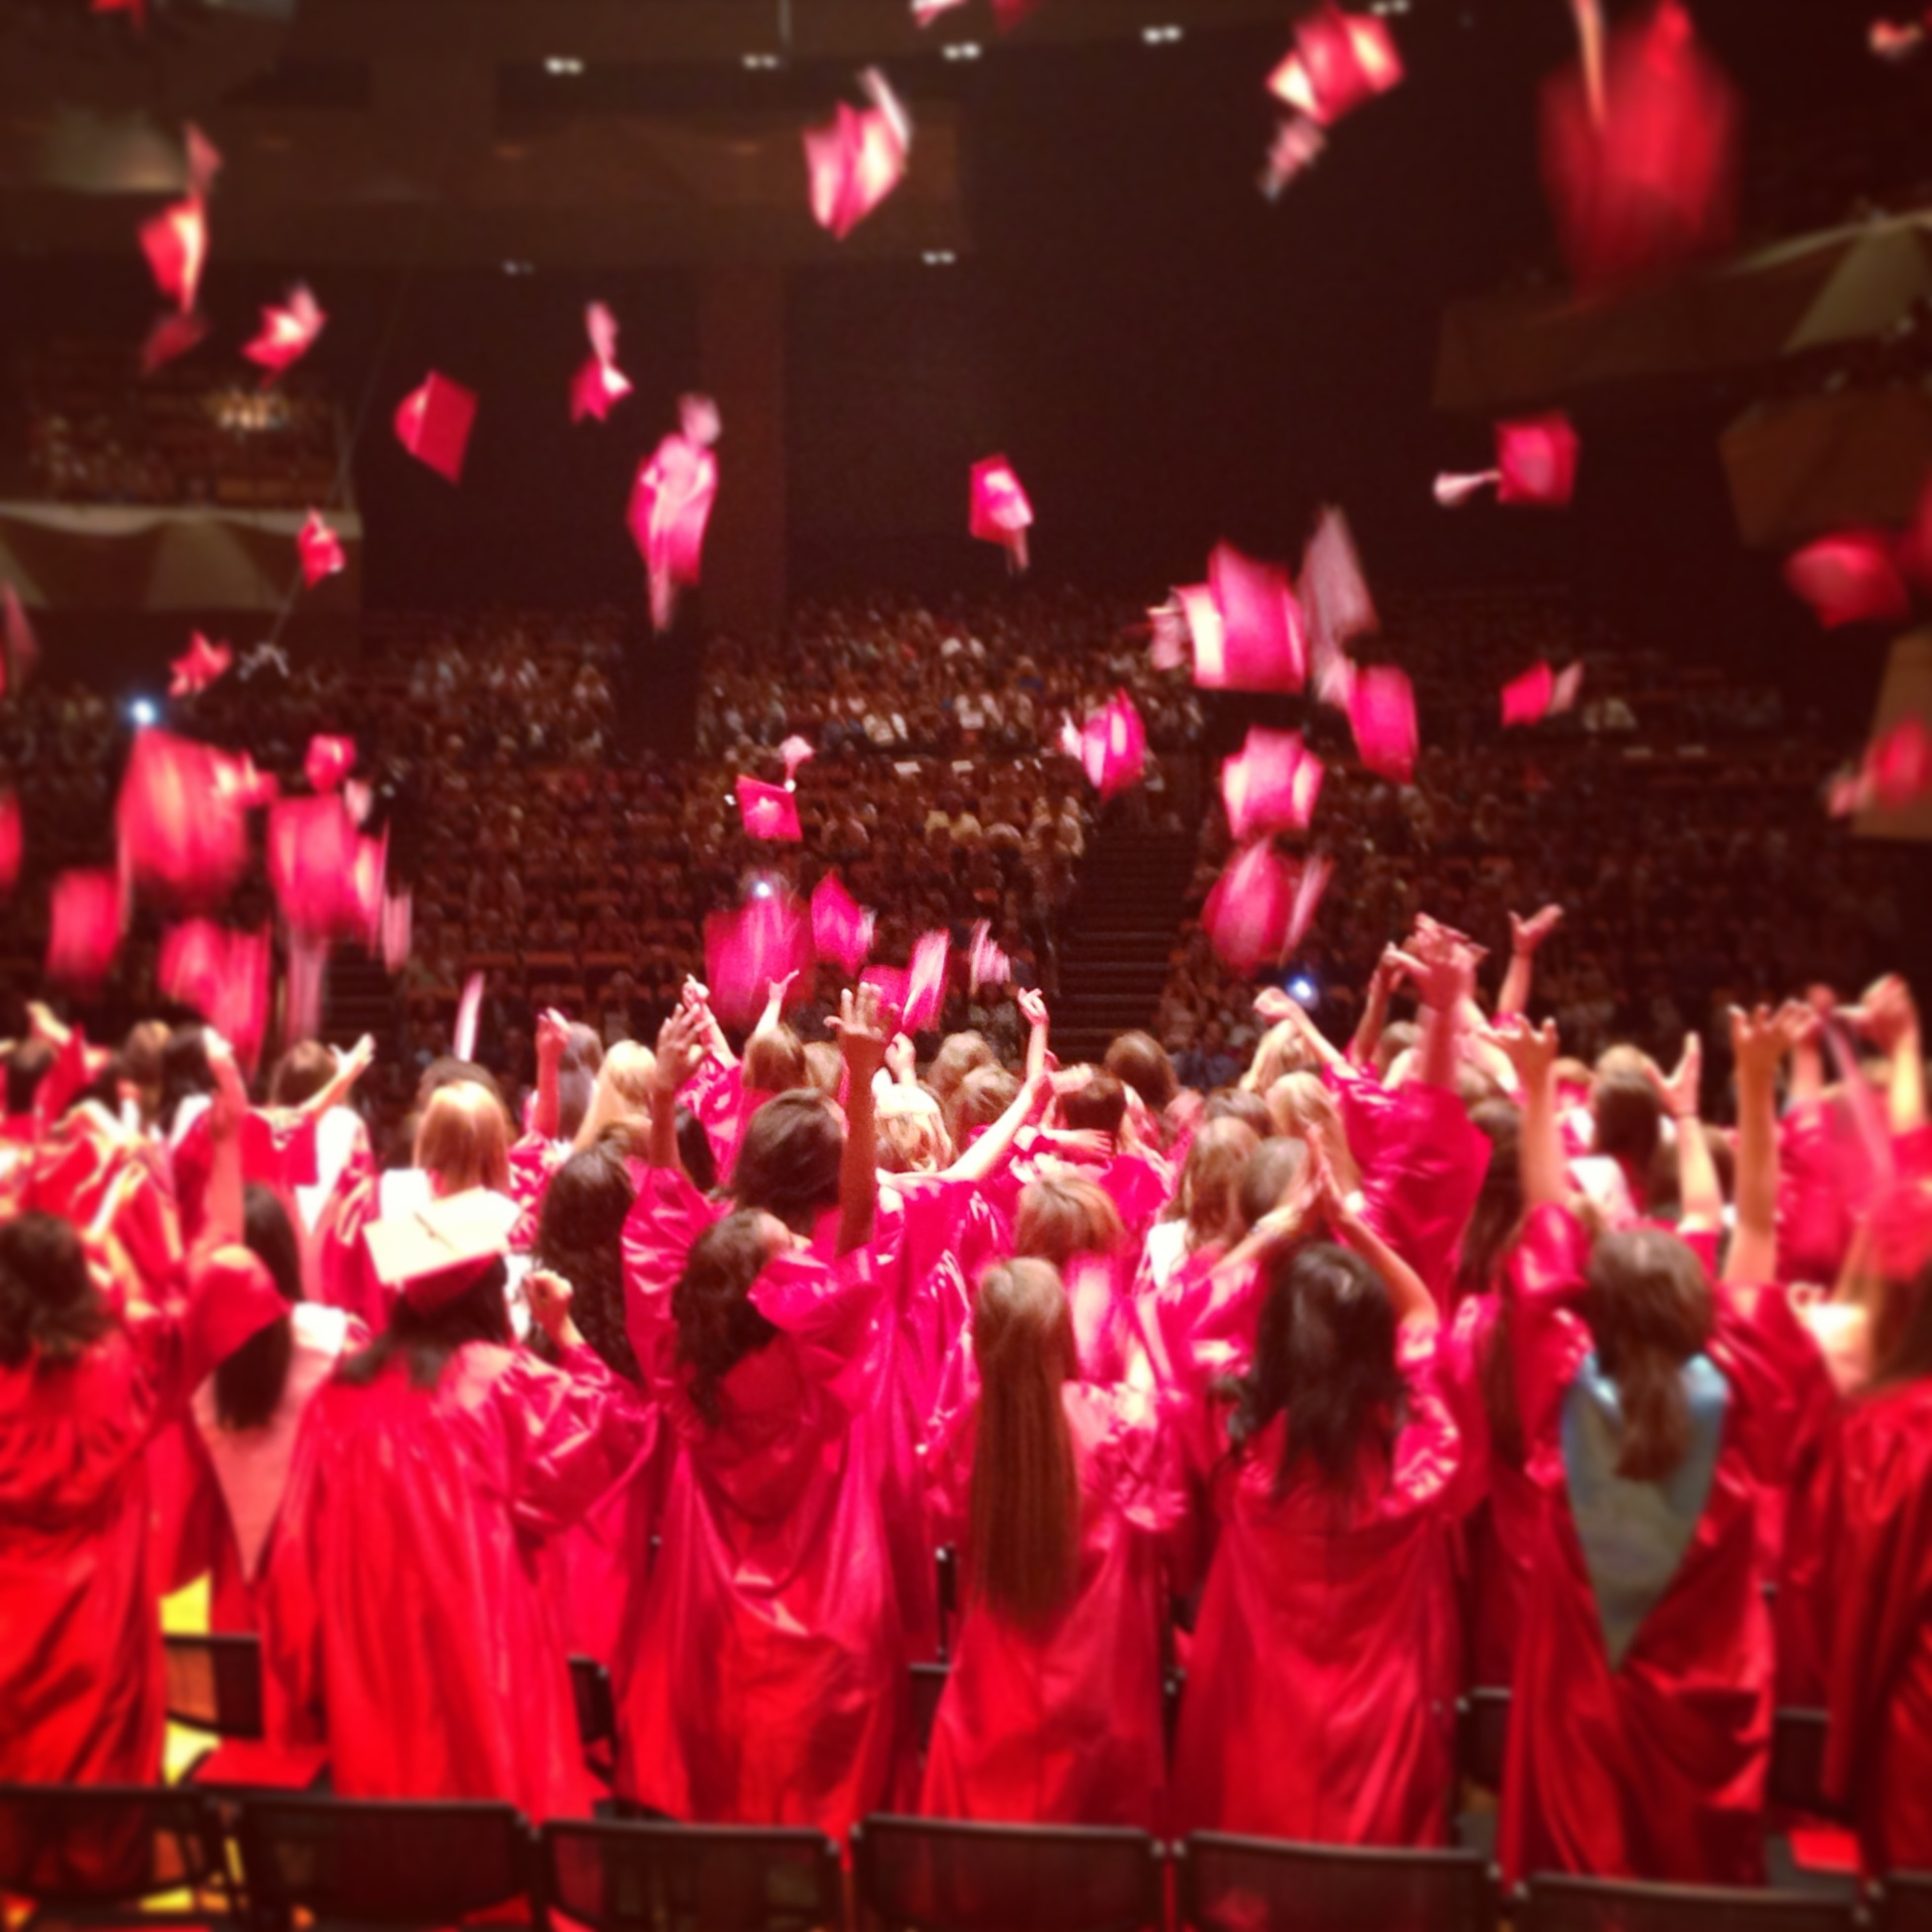 Class of 2013, blissfully unaware of their futures.